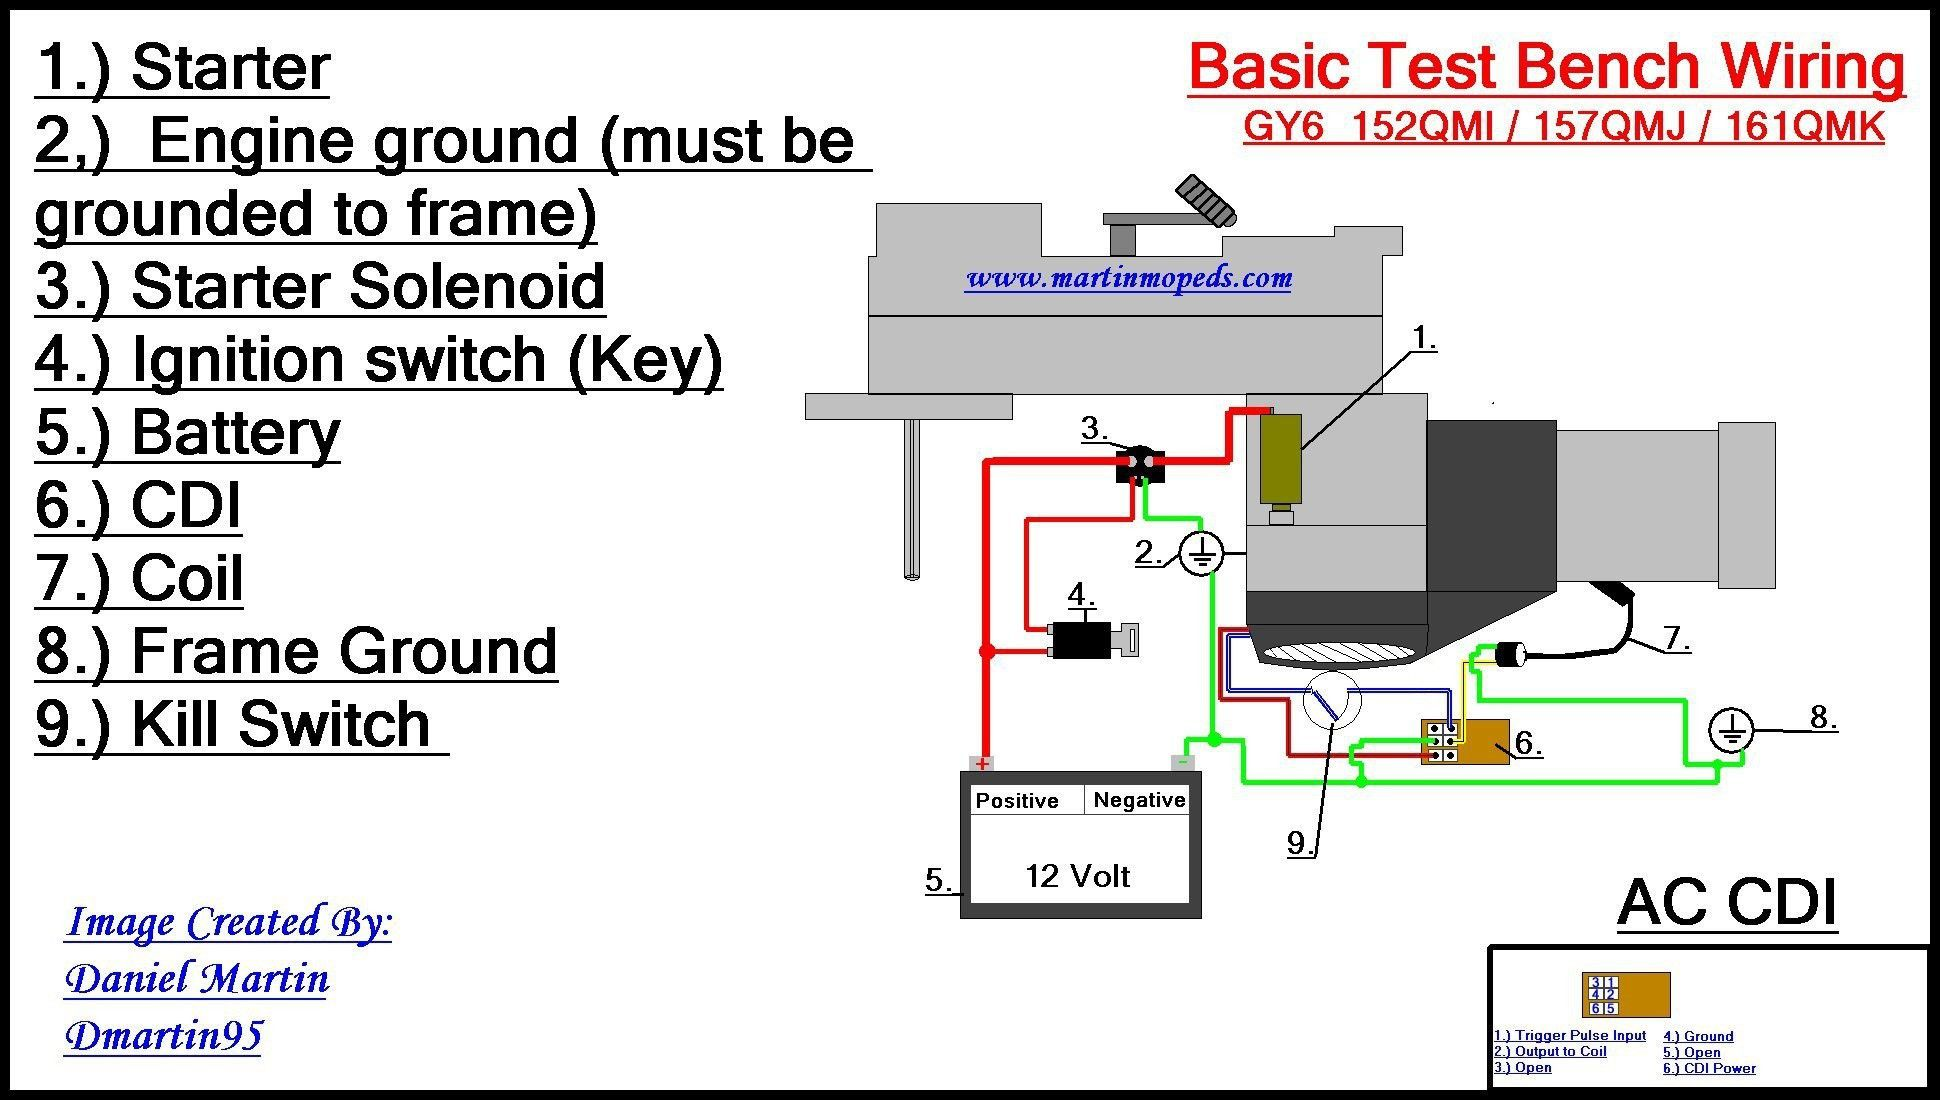 Key Switch Engine Wiring Diagram - Wiring Diagram Article on small engine magneto ignition, small engine ignition coil diagram, small engine starter diagram,